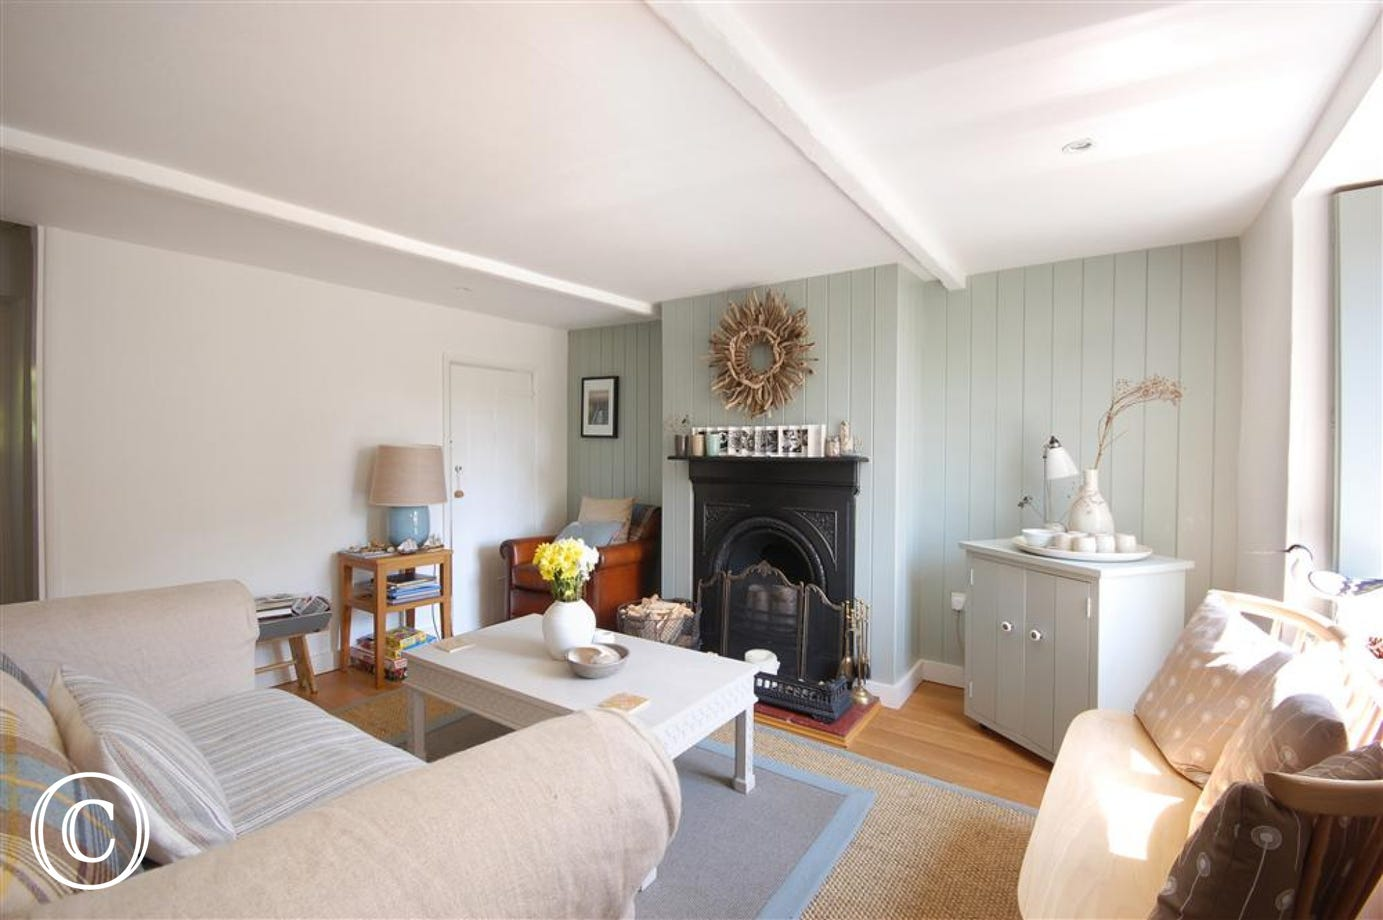 The bright sitting room is stylishly furnished with comfortable seating and an open fire for cosy evenings